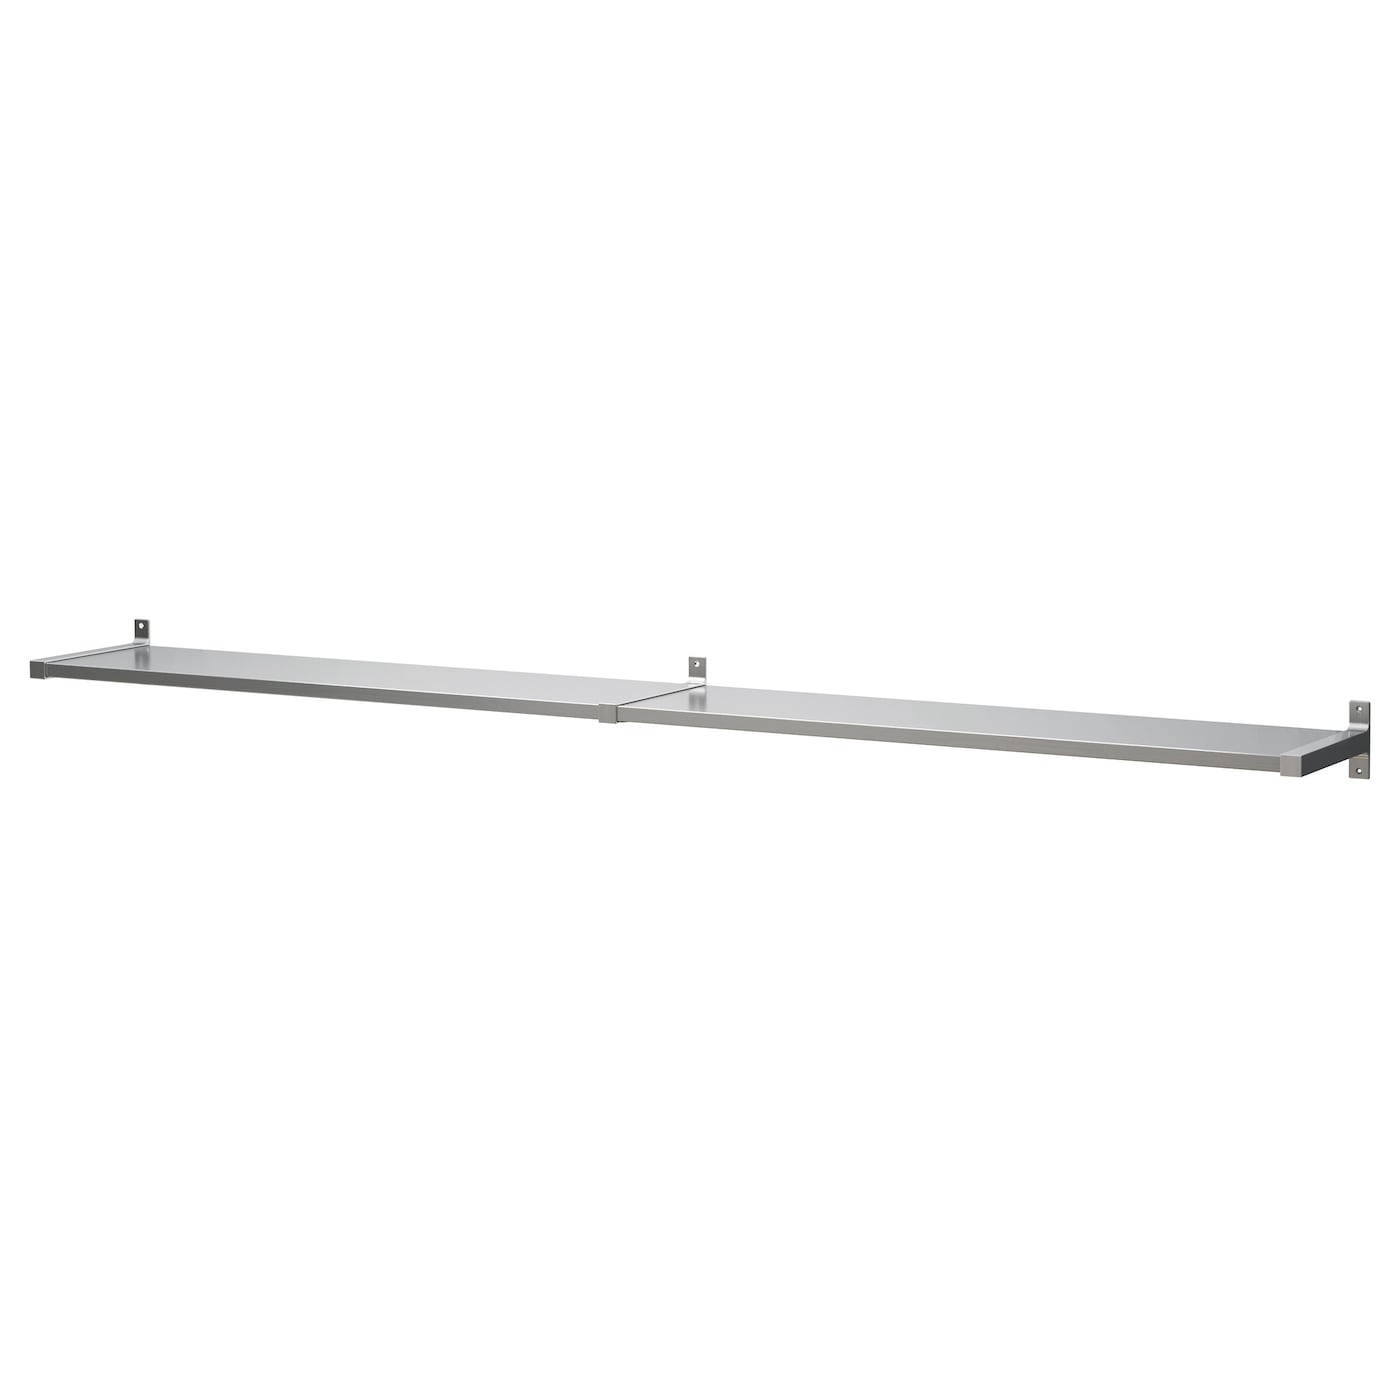 Design Stainless Steel Shelf ekby mossby wall shelf stainless steel 239x28 cm ikea partitioning inside keeps shelves in place